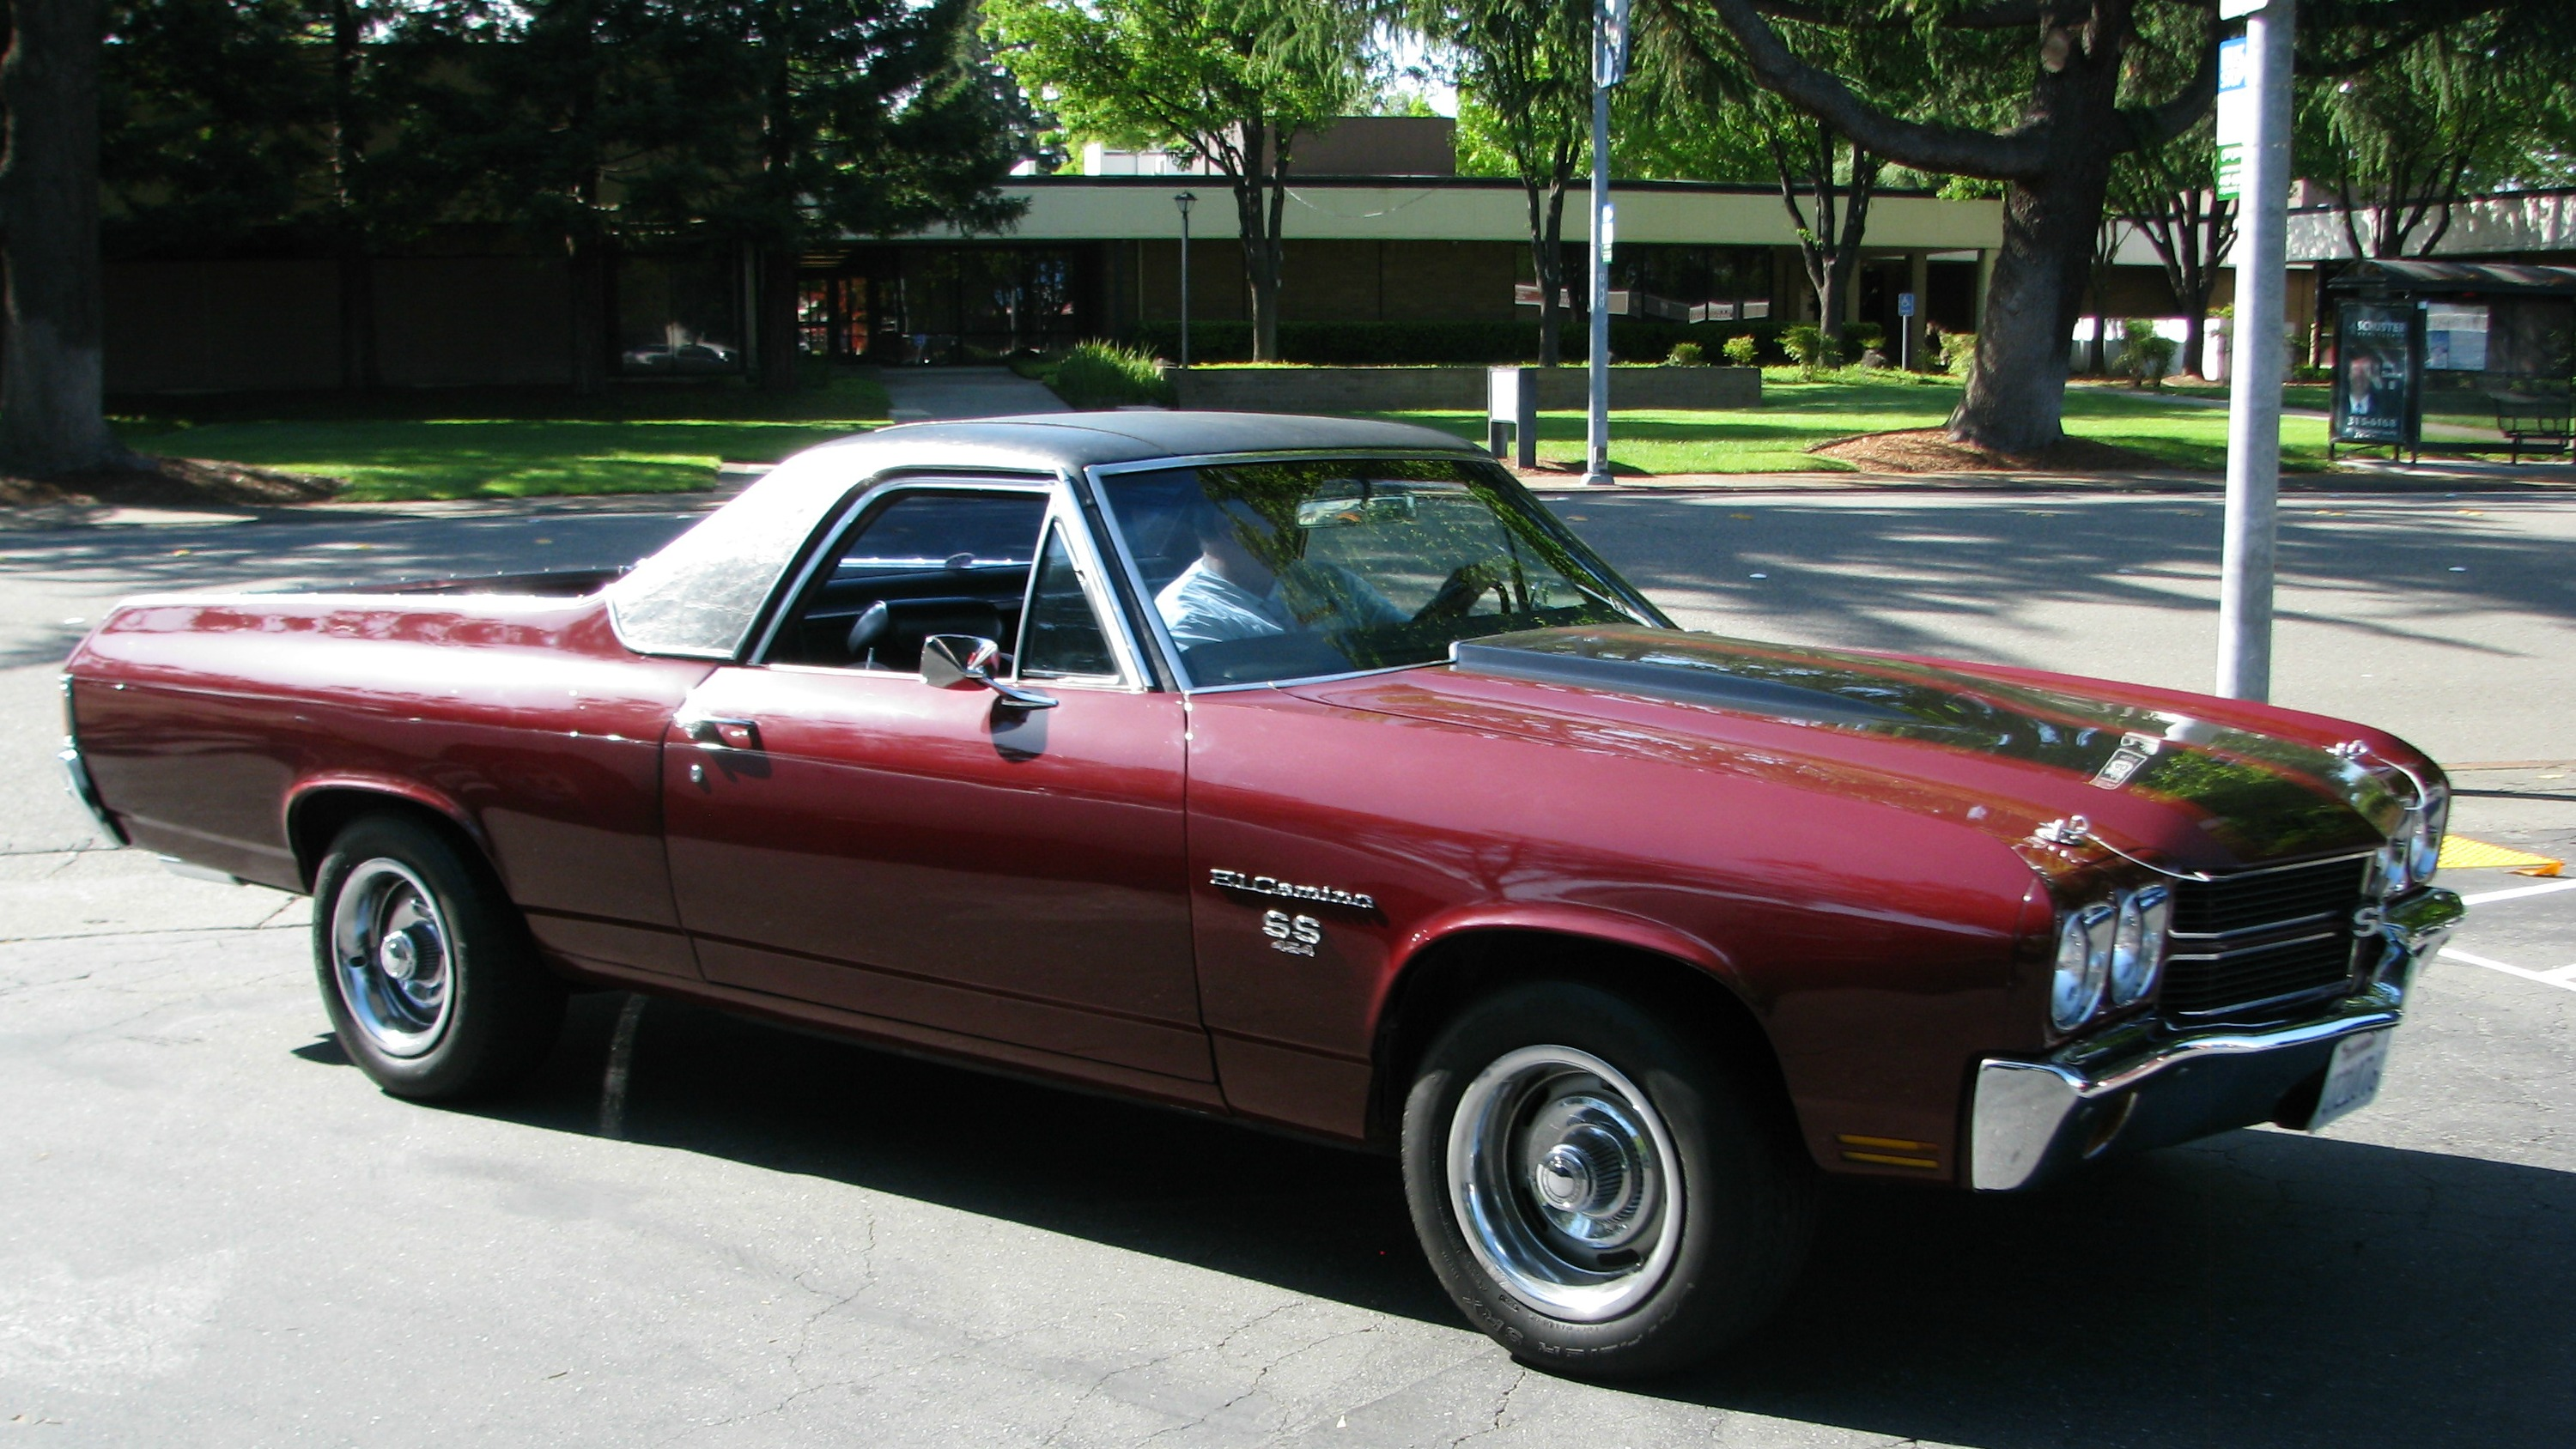 1970 Chevrolet El Camino SS 454 '4T217076' 1 | Flickr - Photo Sharing!